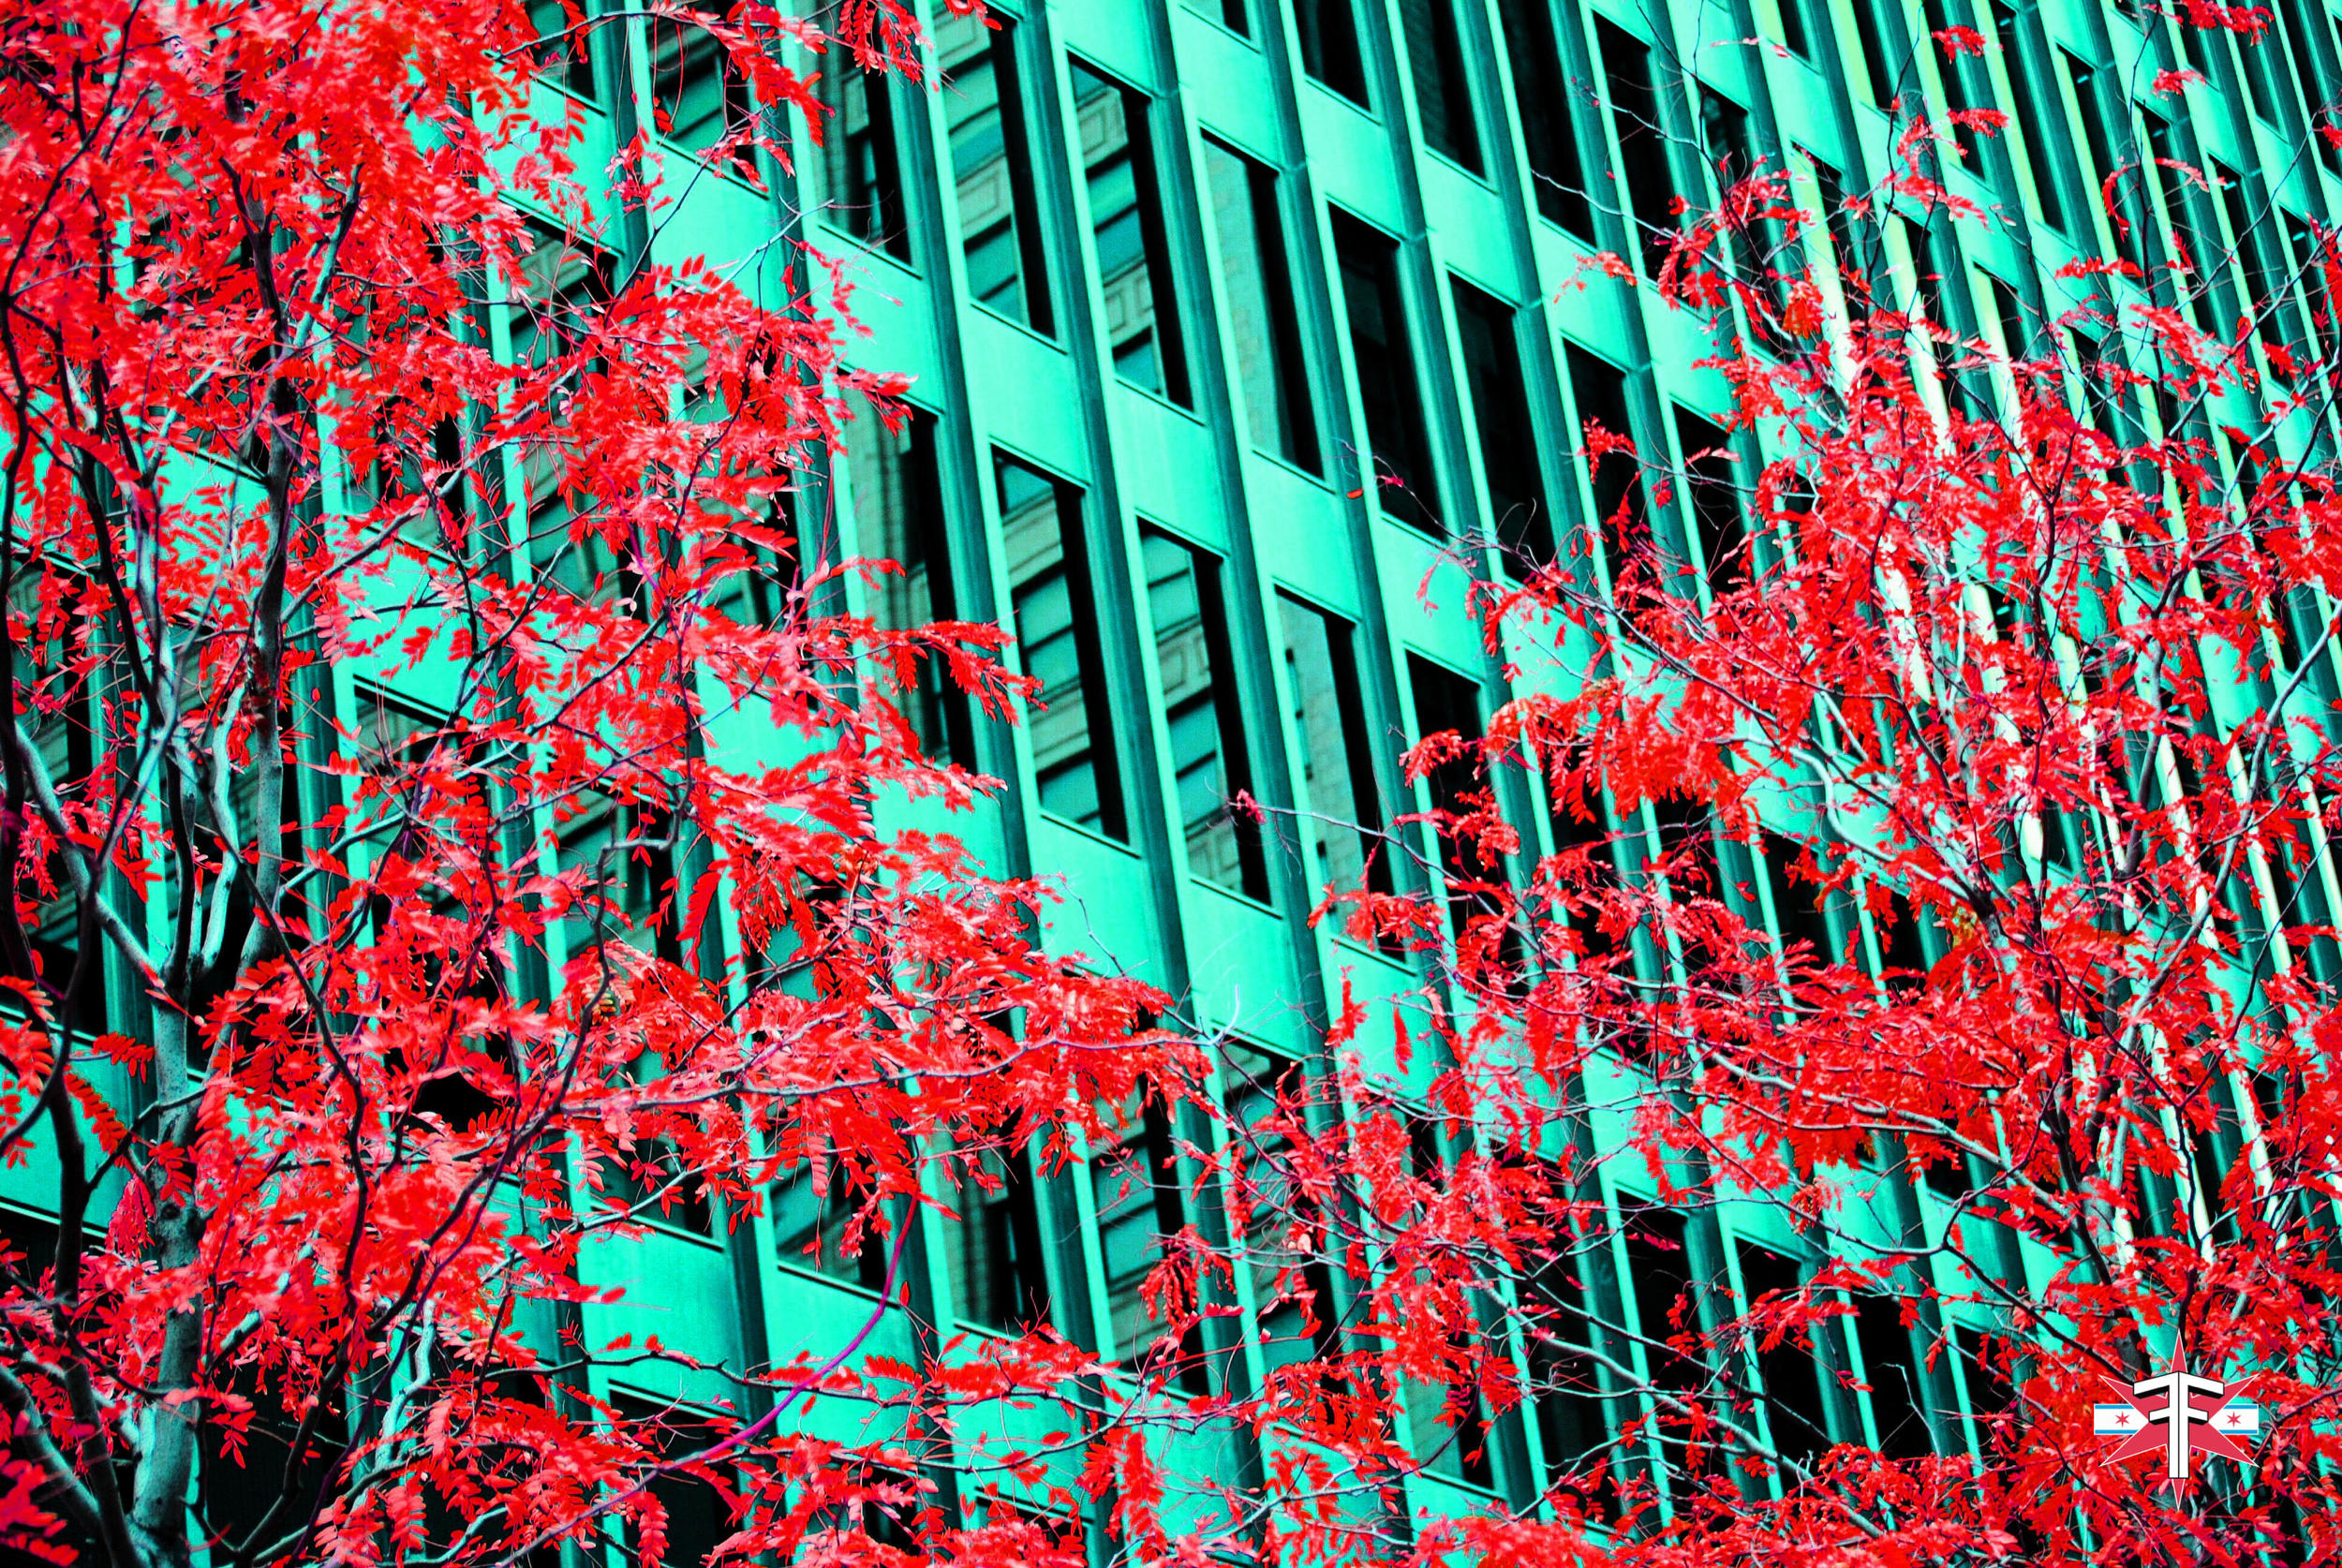 chicago art abstract eric formato photography color travel cityscape architecture saturated citycapes bright vibrant artistic-57.jpg